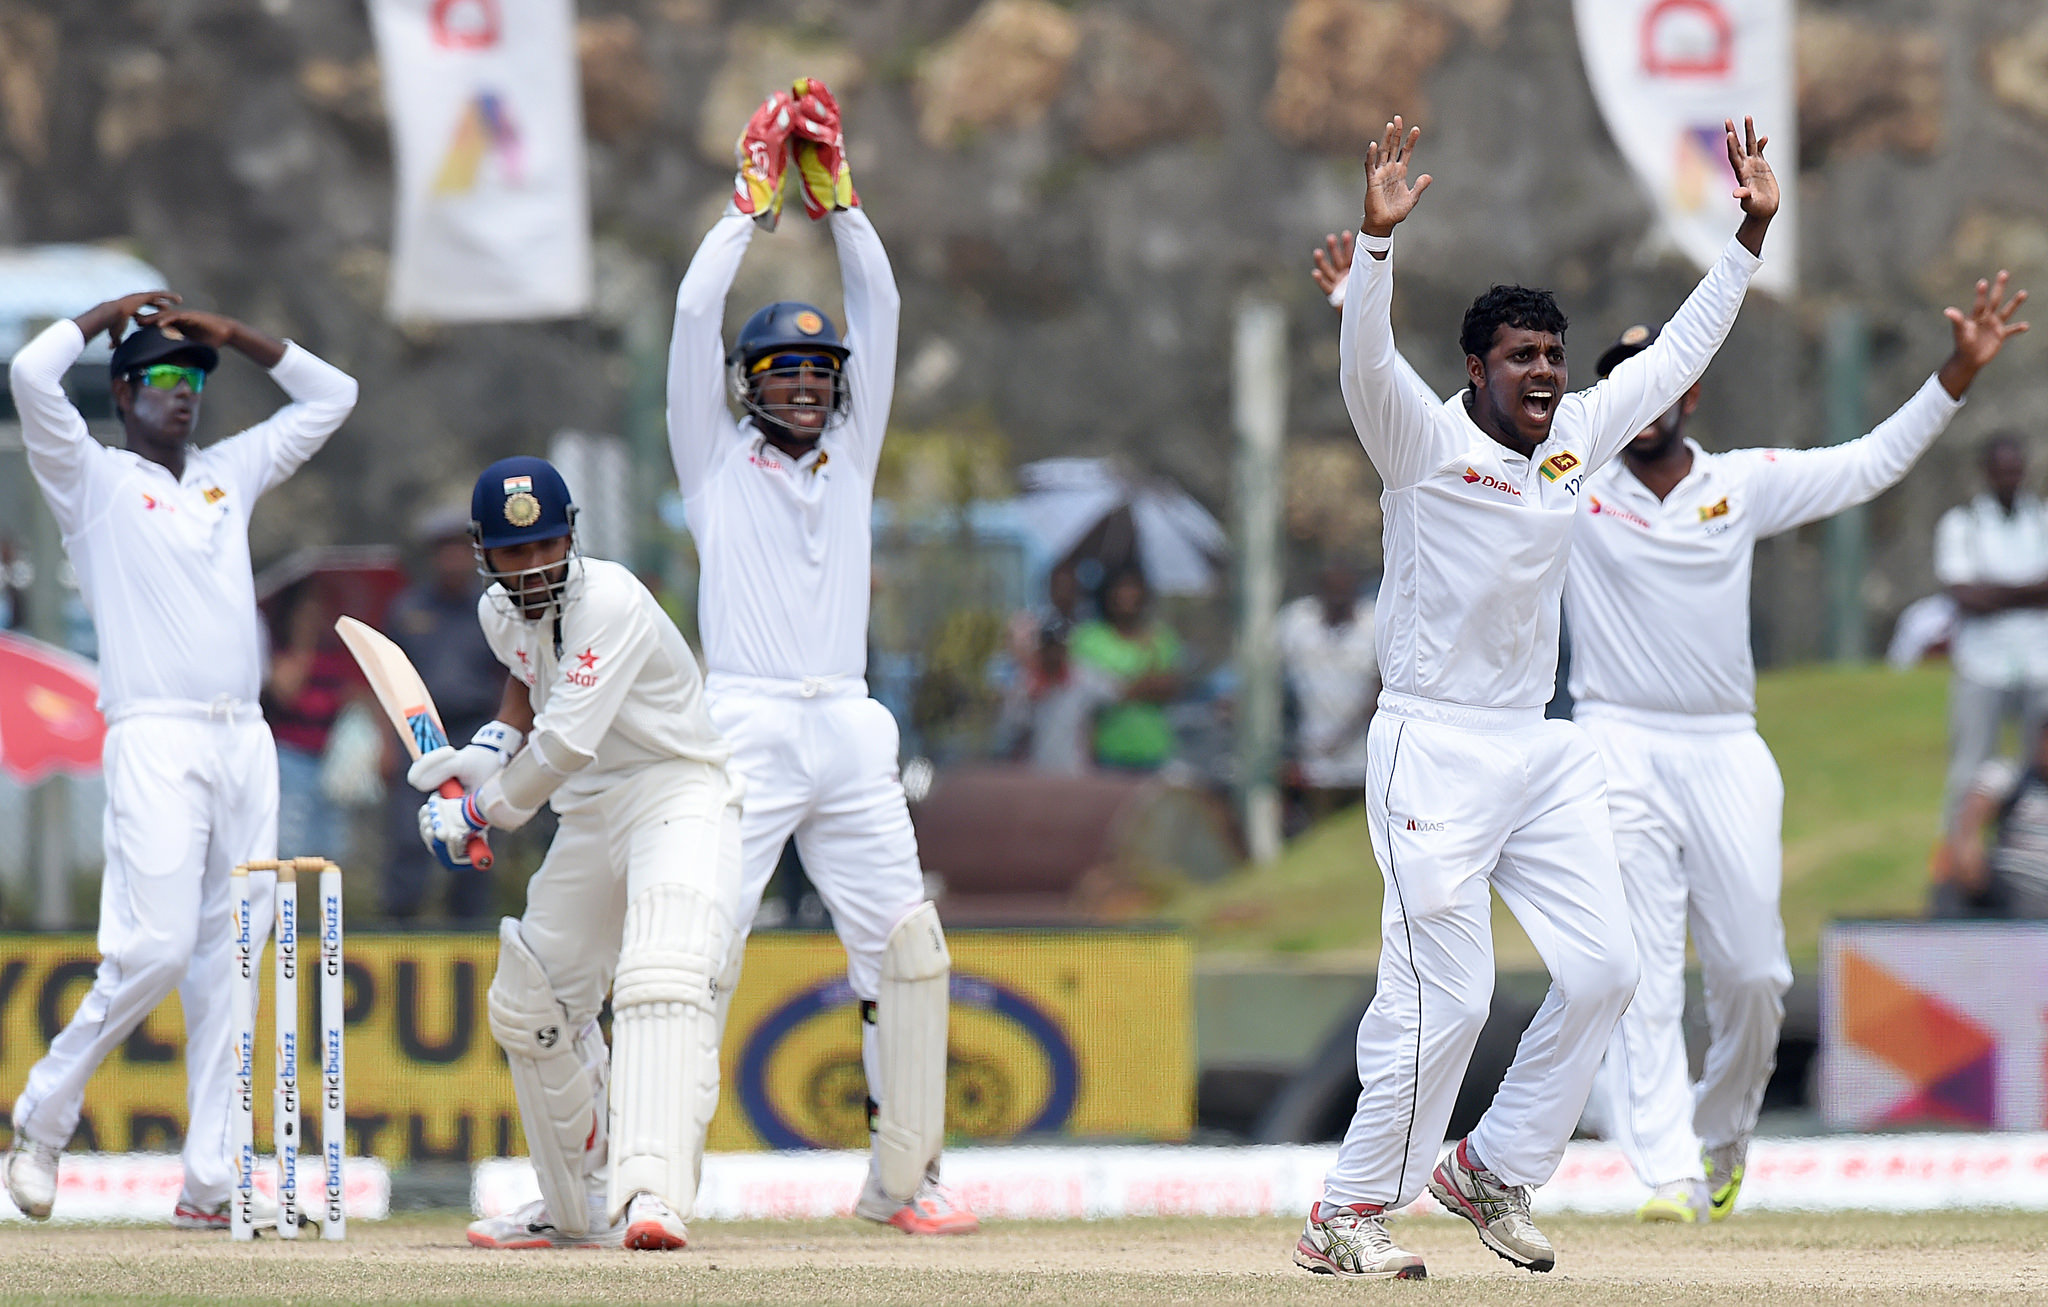 Sri Lanka didn't have a great 2015 in tests.